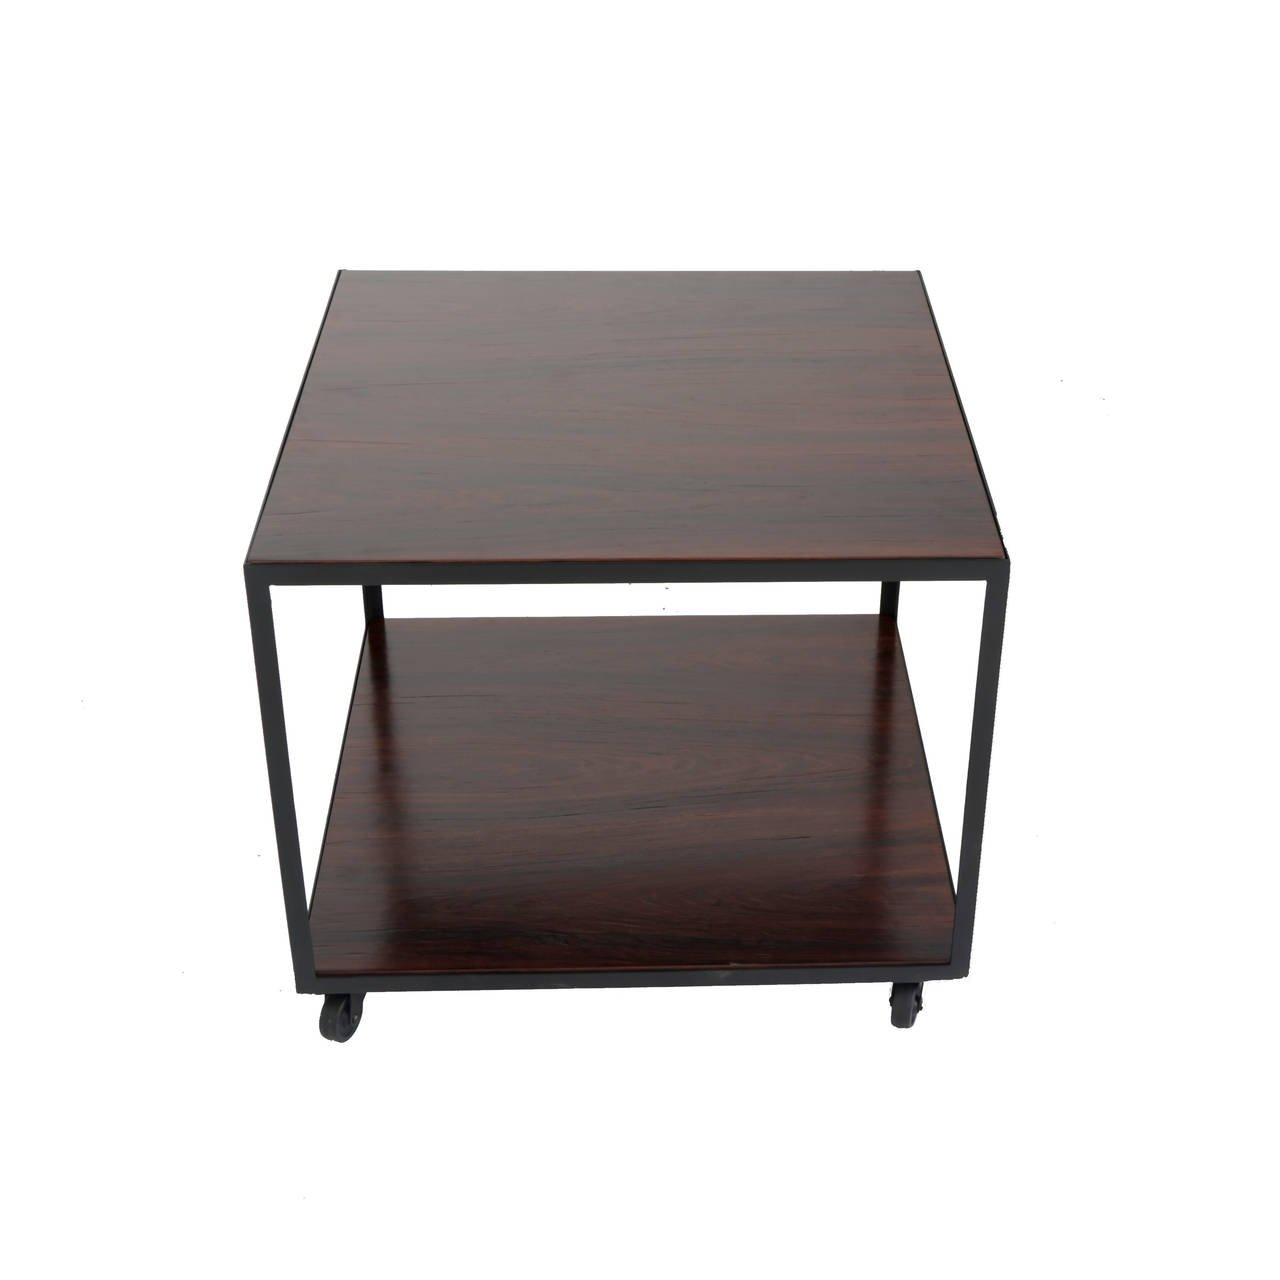 square rosewood side table casters for accent glass with wheels acrylic shelf end mirror height dark brown coffee set ikea floating shelves small outdoor seating grey sofa